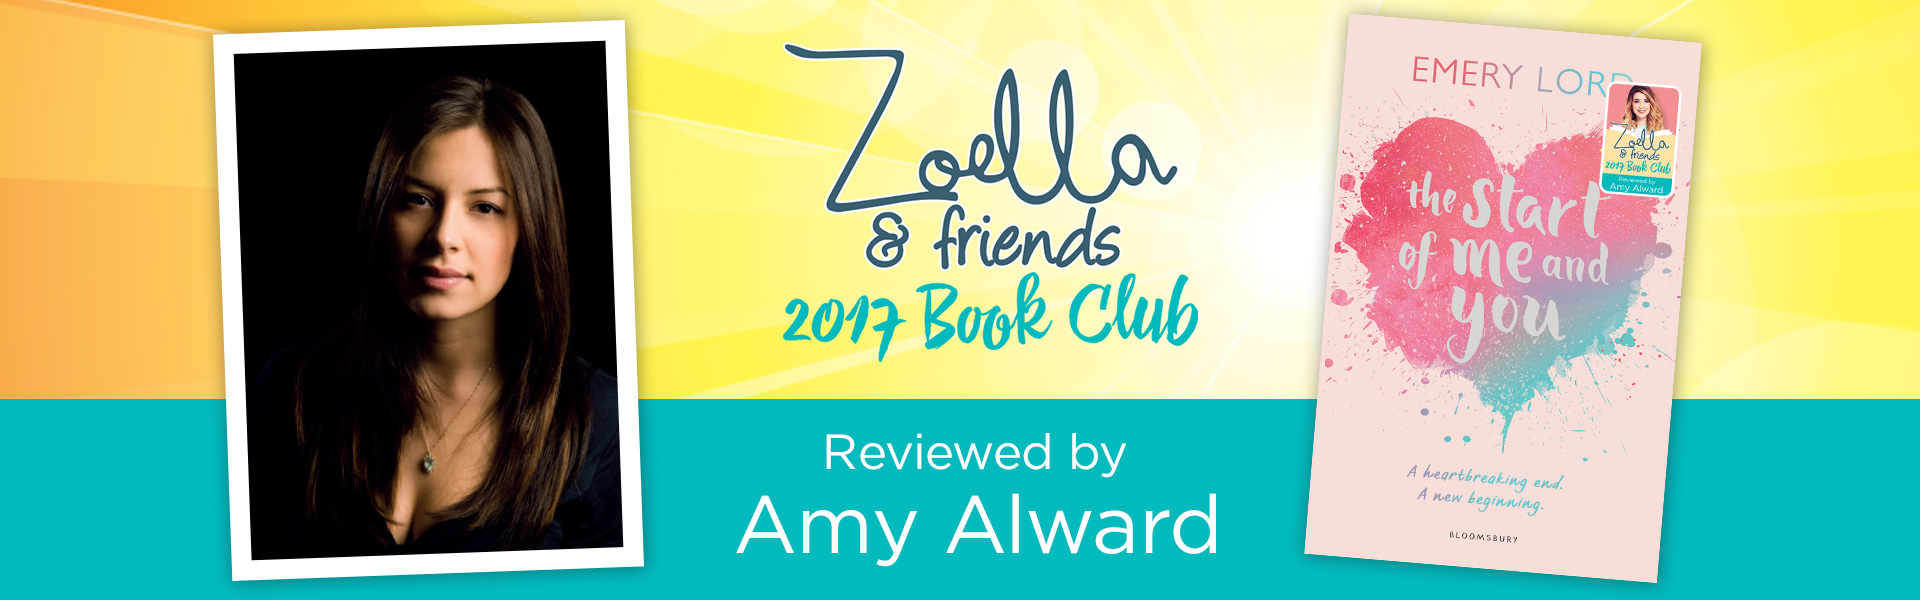 Zoella & Friends 2017 Book Club: Amy Alward Reviews The Start of Me and You by Emery Lord